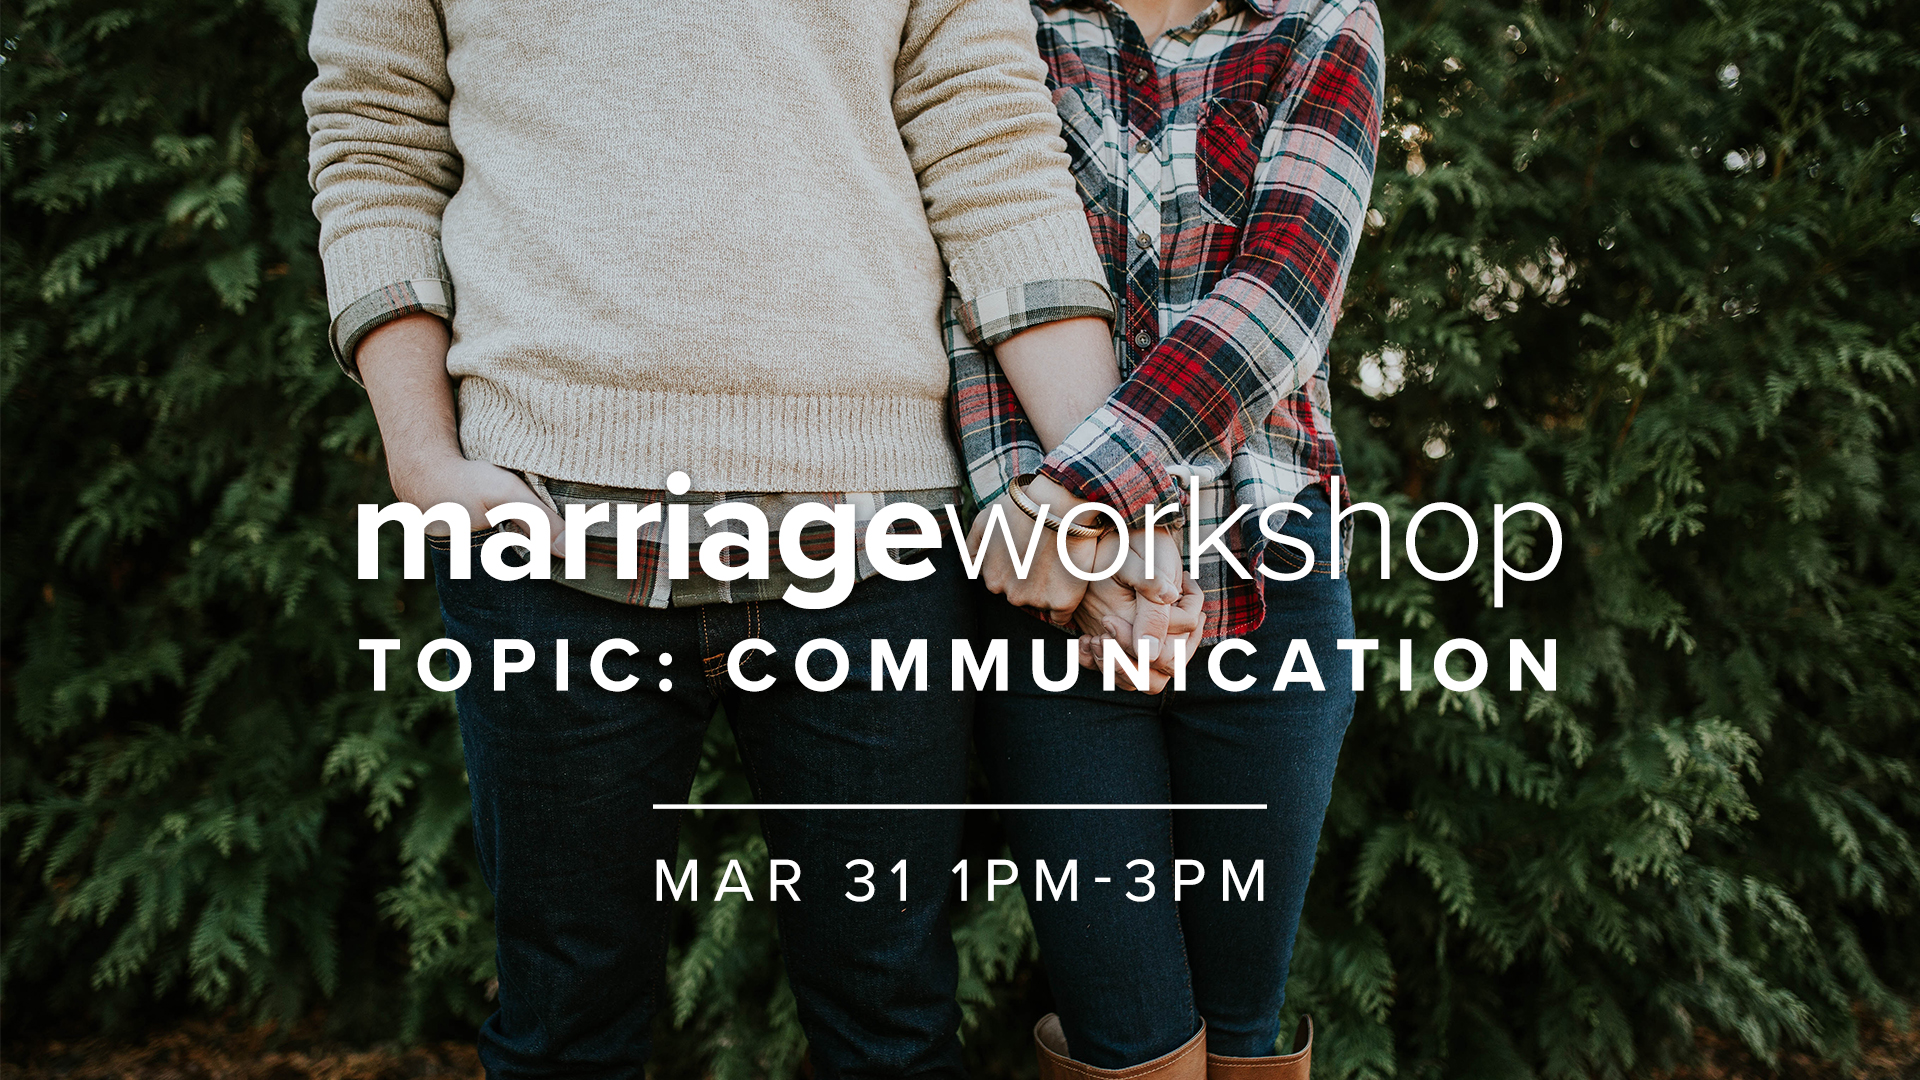 Marriage Workshop Graphic (Mar 31) - Widescreen.jpg